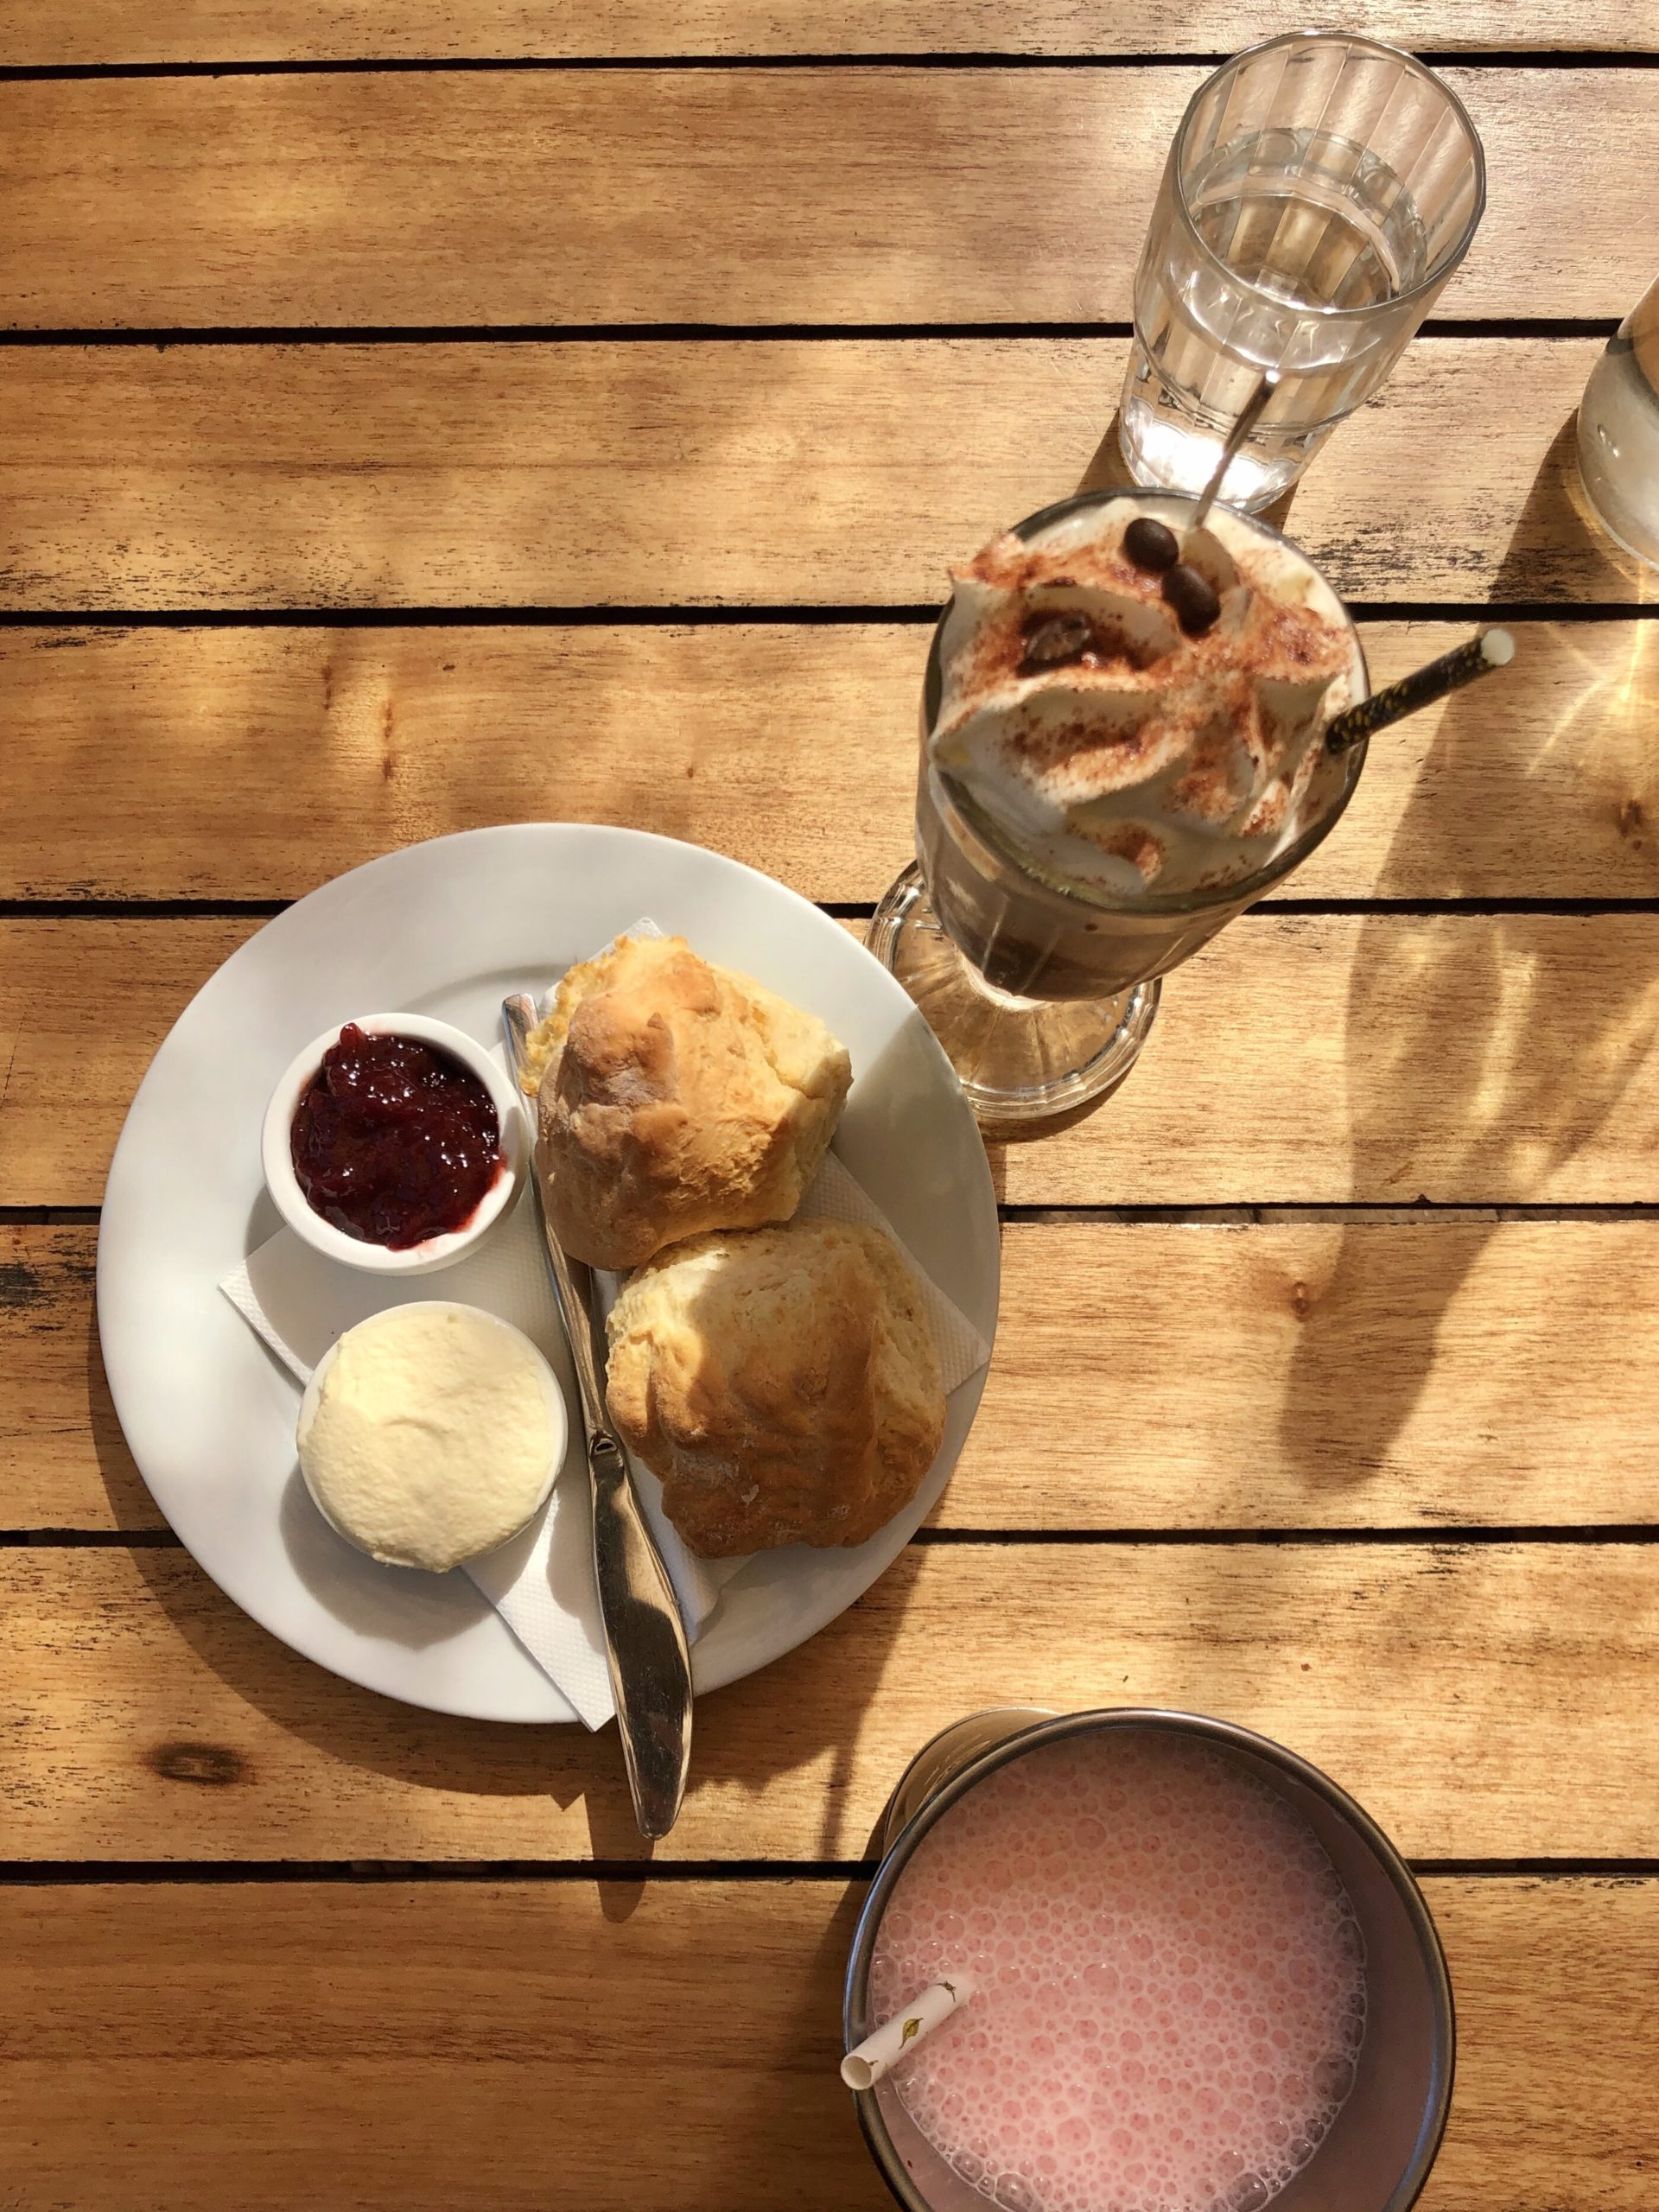 Plate with scones, cream and jam with a milkshake and an iced coffee